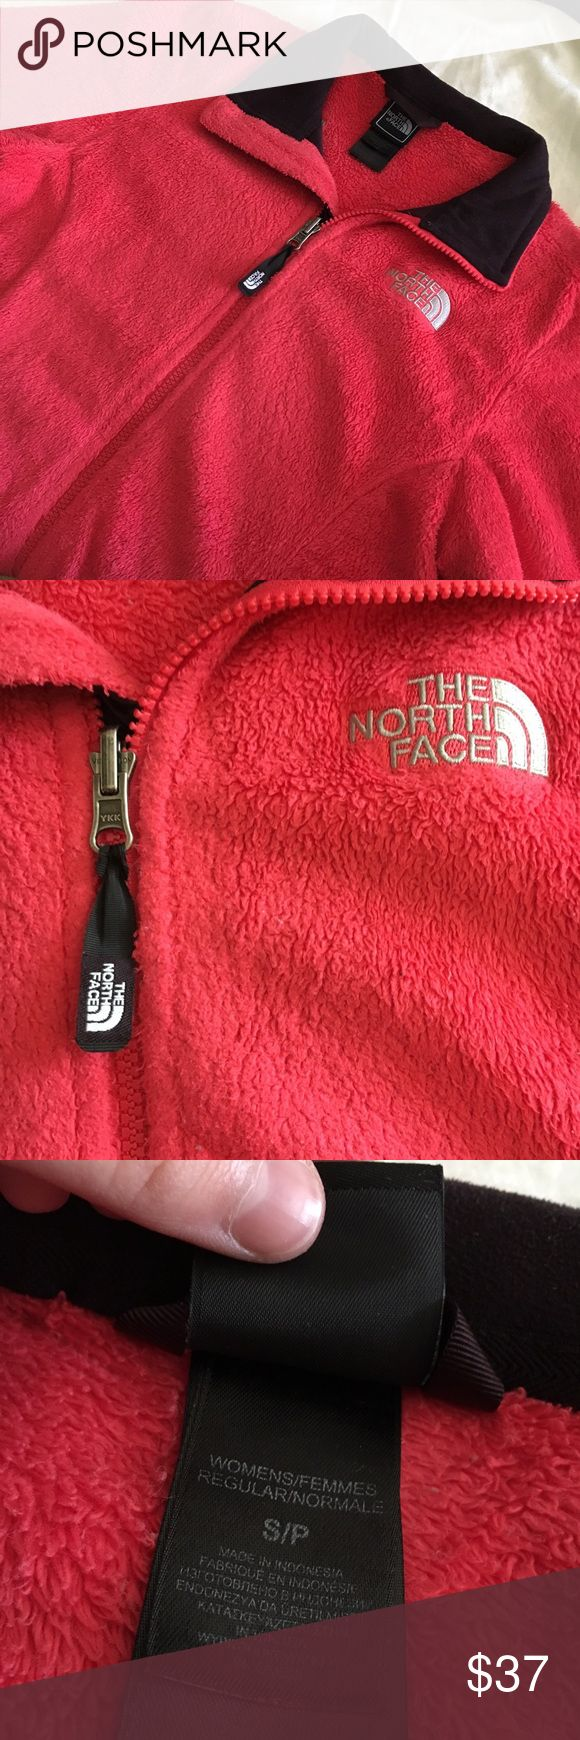 ❄️Fuzzy Bright Pink/Red North Face Jacket❄️ This jacket is extremely comfortable and it's been worn a few times. It's still in pretty good condition, and it needs a new home! The North Face Jackets & Coats